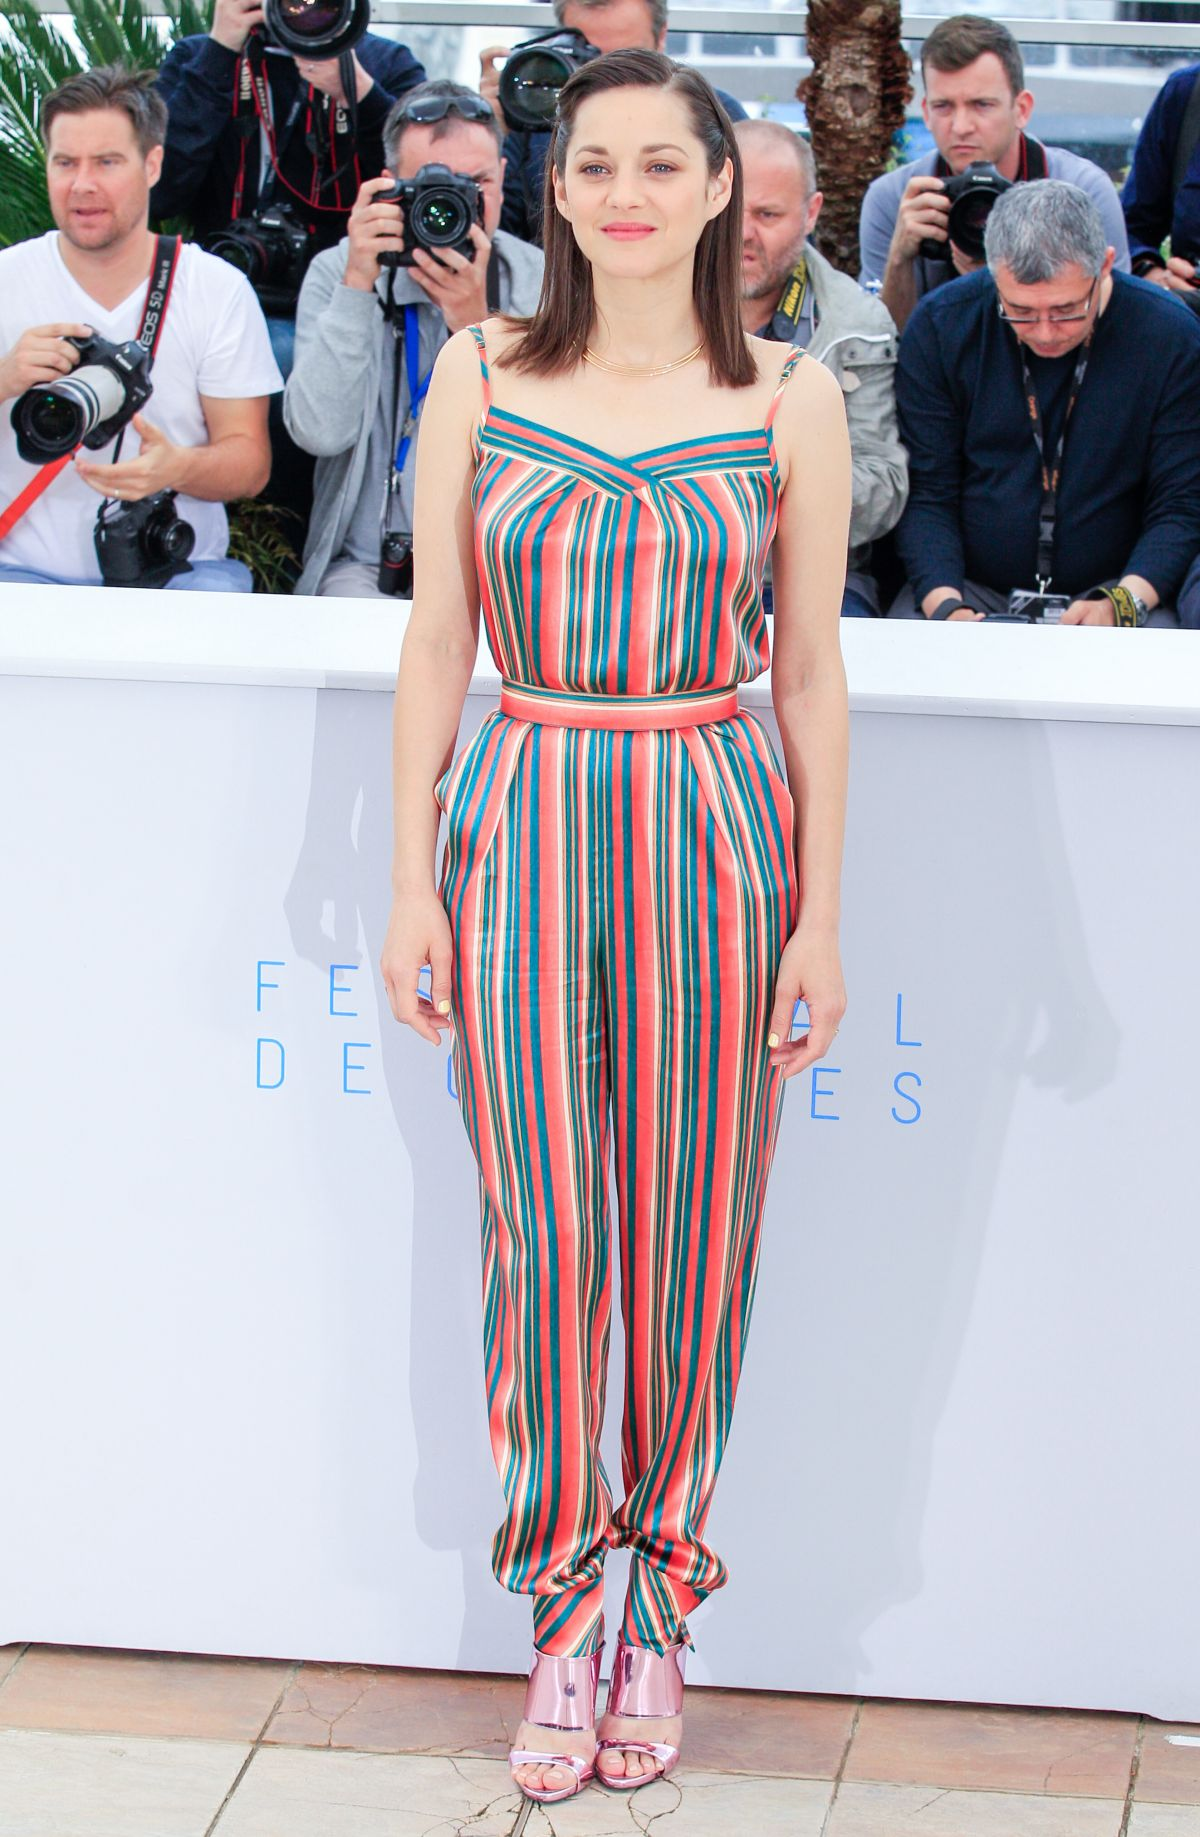 marion-cotillard-at-macneth-photocall-at-cannes-film-festival_16.jpg